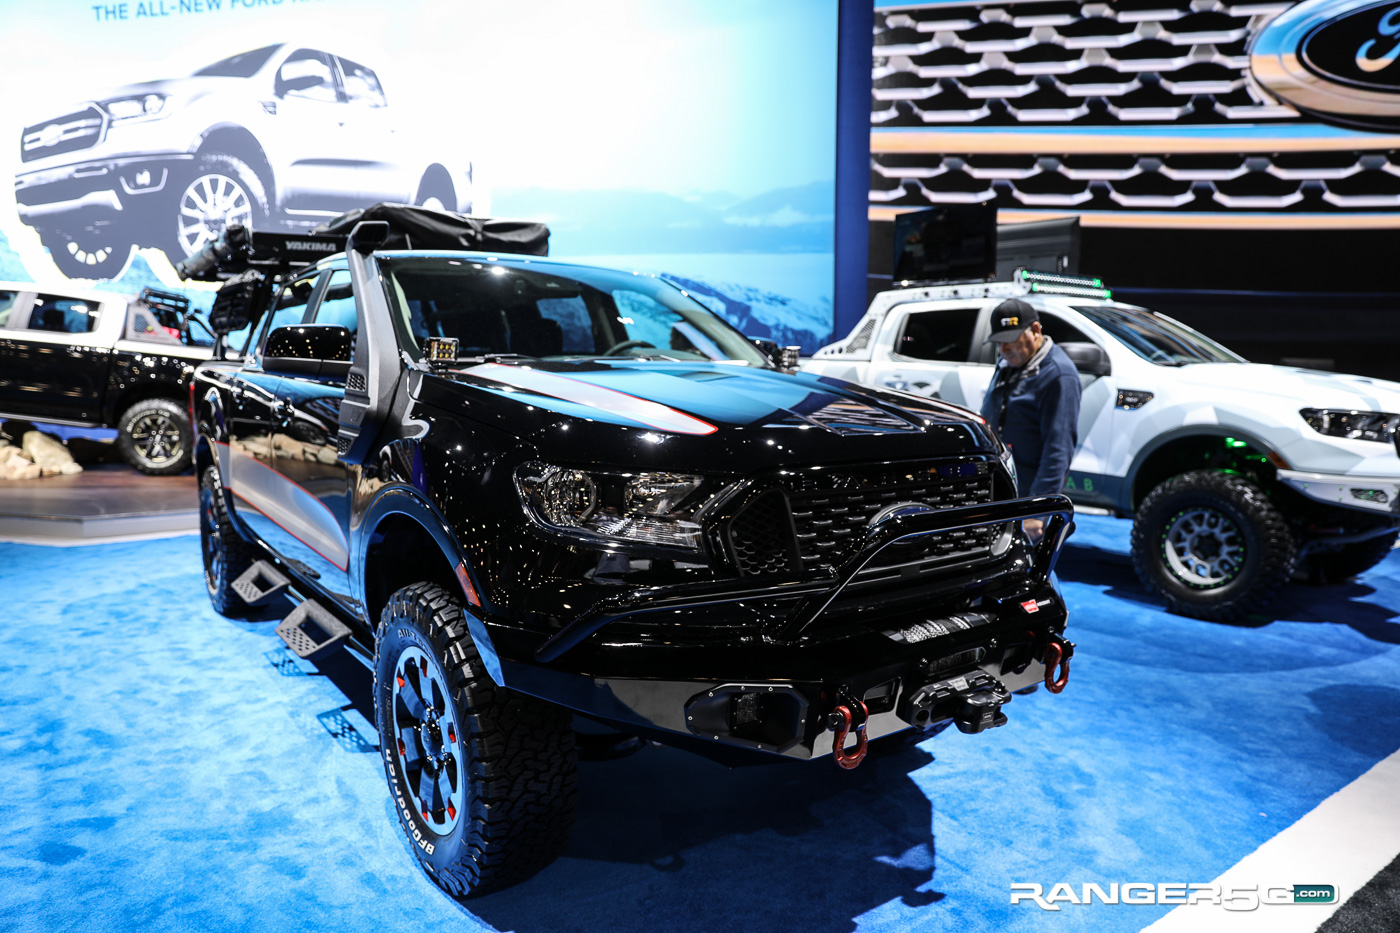 2019 Ford Ranger Base Camp 2018 Sema R5g Coverage